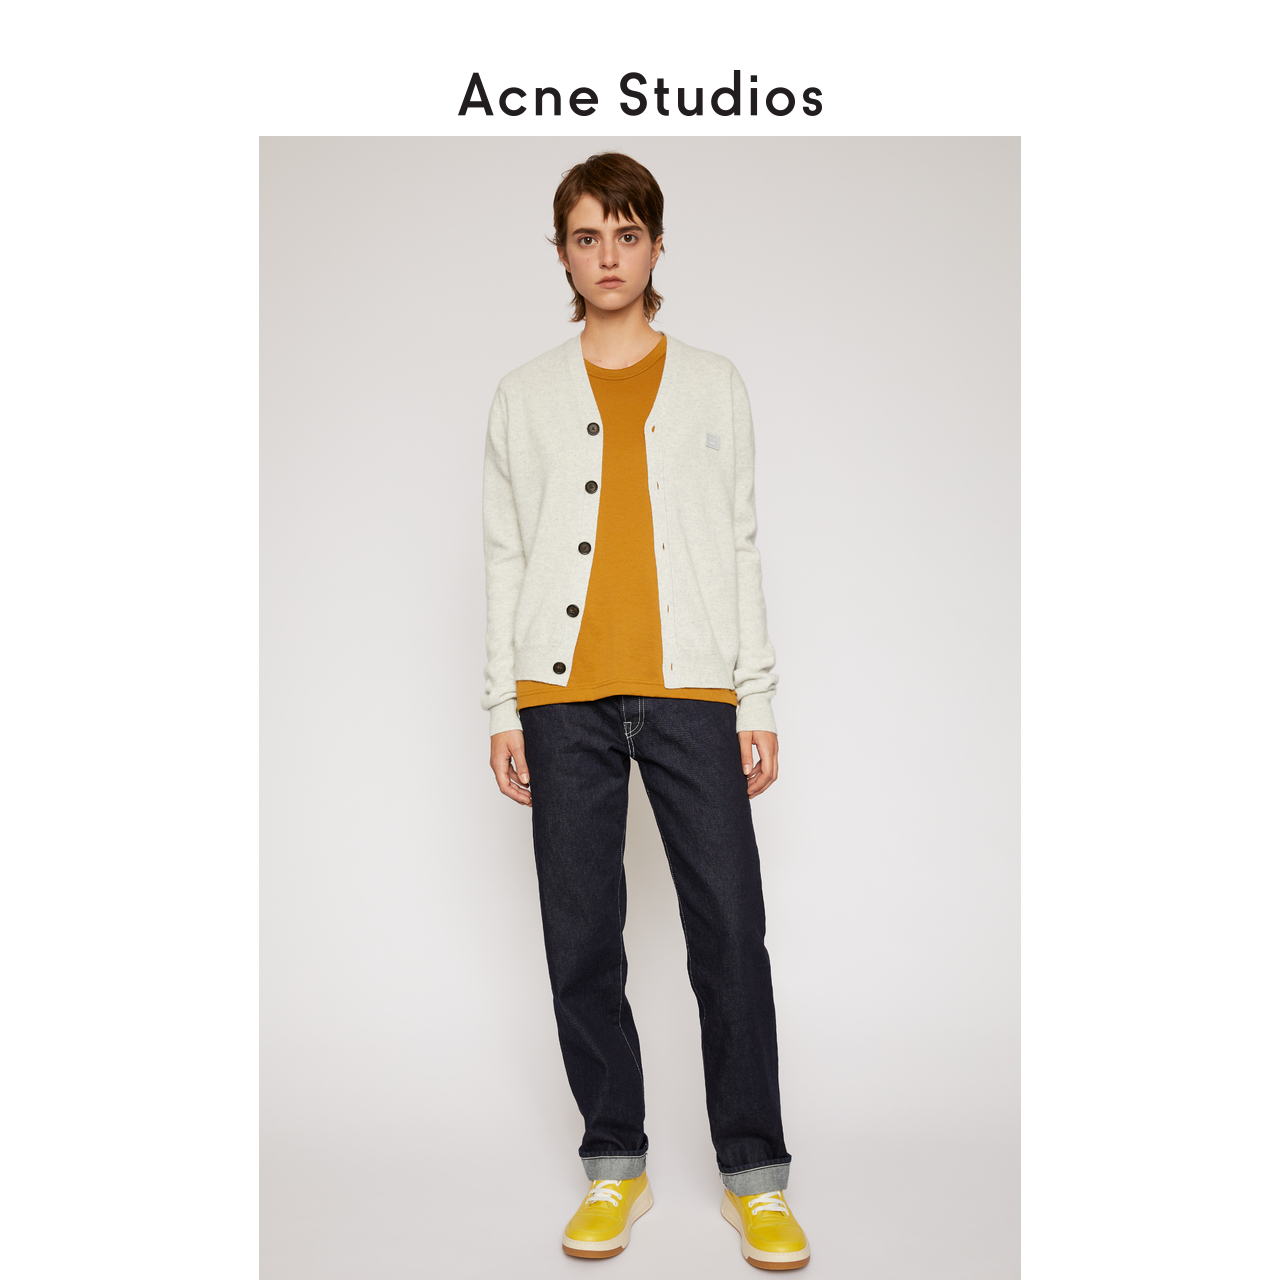 Acne Studios Face Light linen Gray wool cardigan v-neck knitted thin jacket C60015-X92